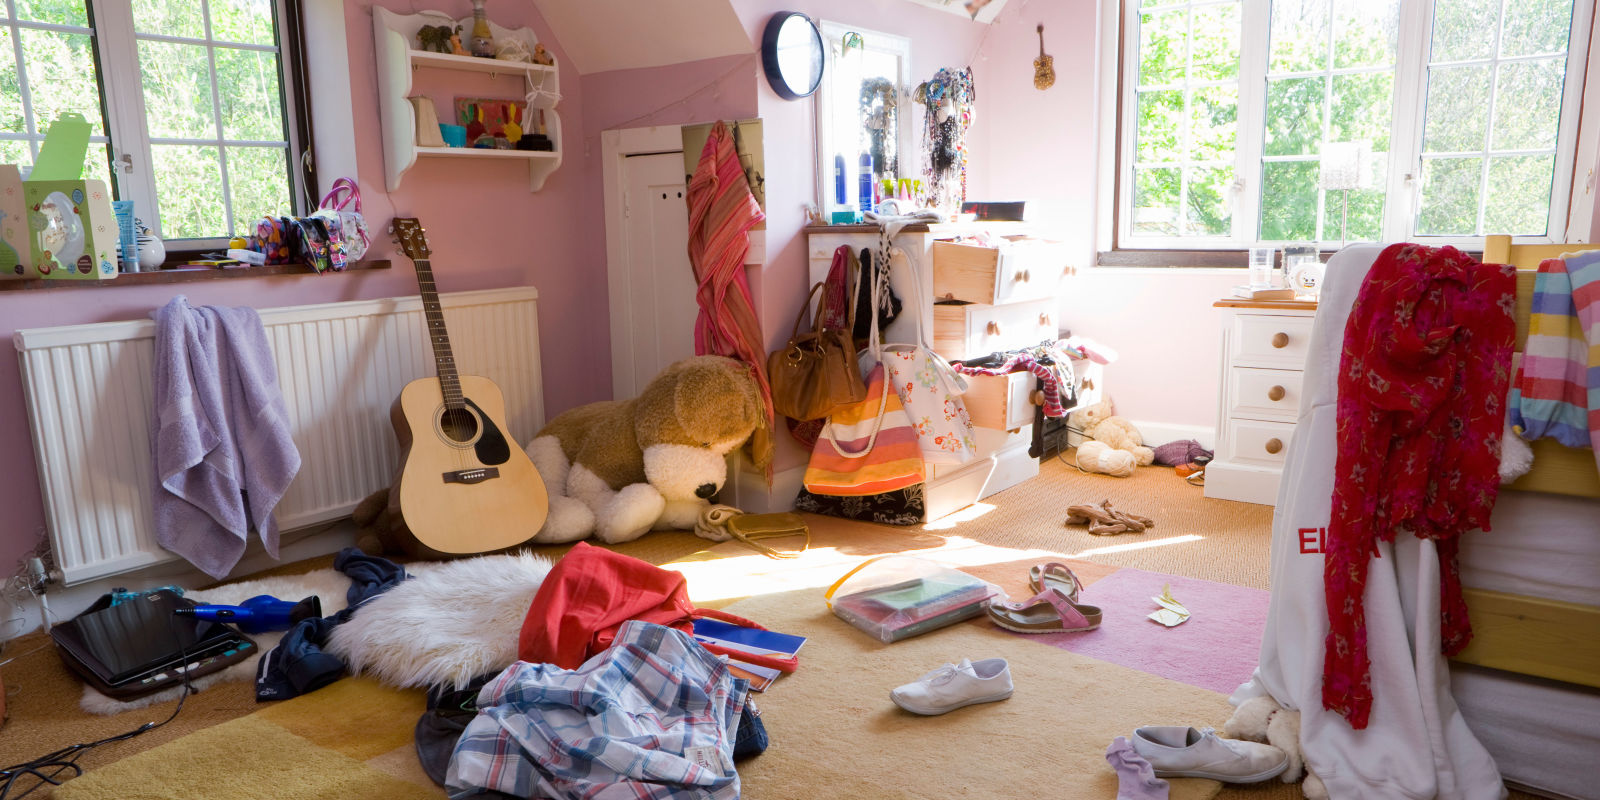 smelly teenage bedrooms cause sleep problems